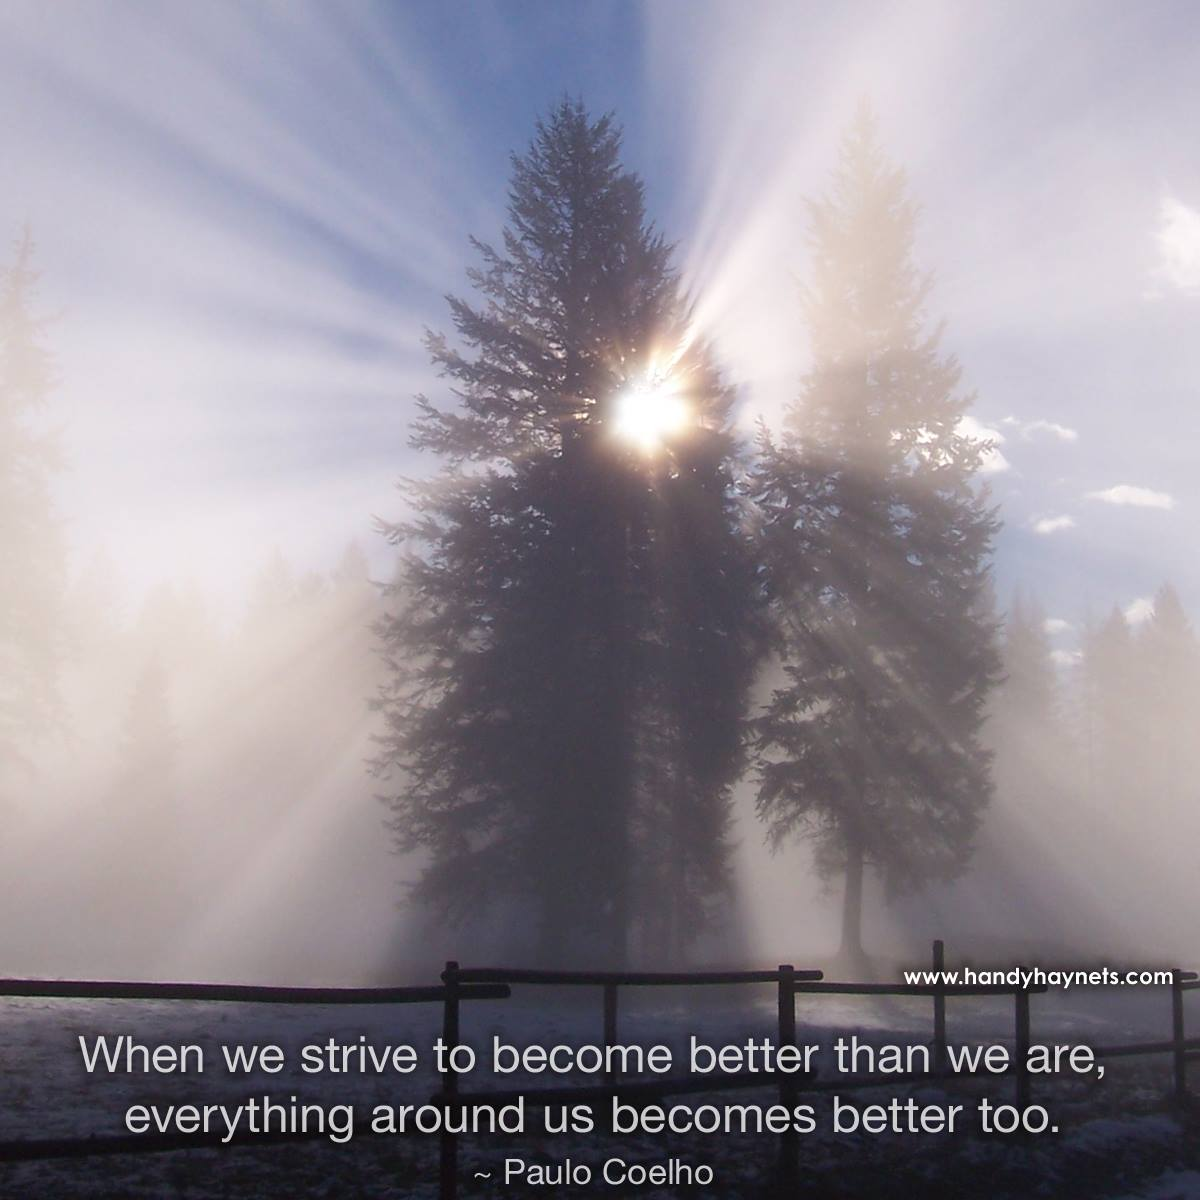 When we strive to become better than we are, everything around us becomes better too.